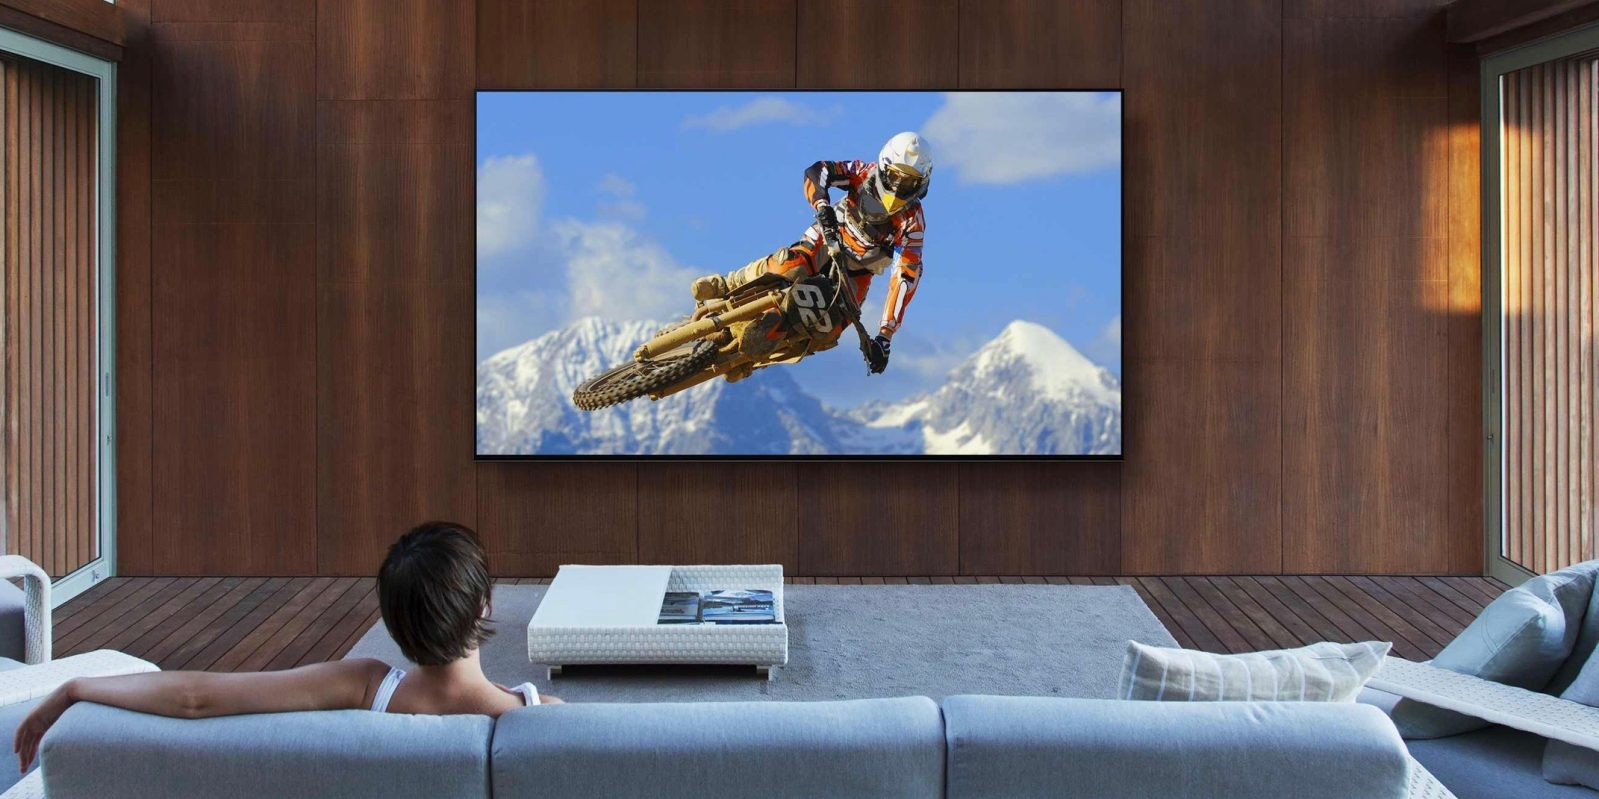 Sony launching first new 4K TVs to gain AirPlay 2 and